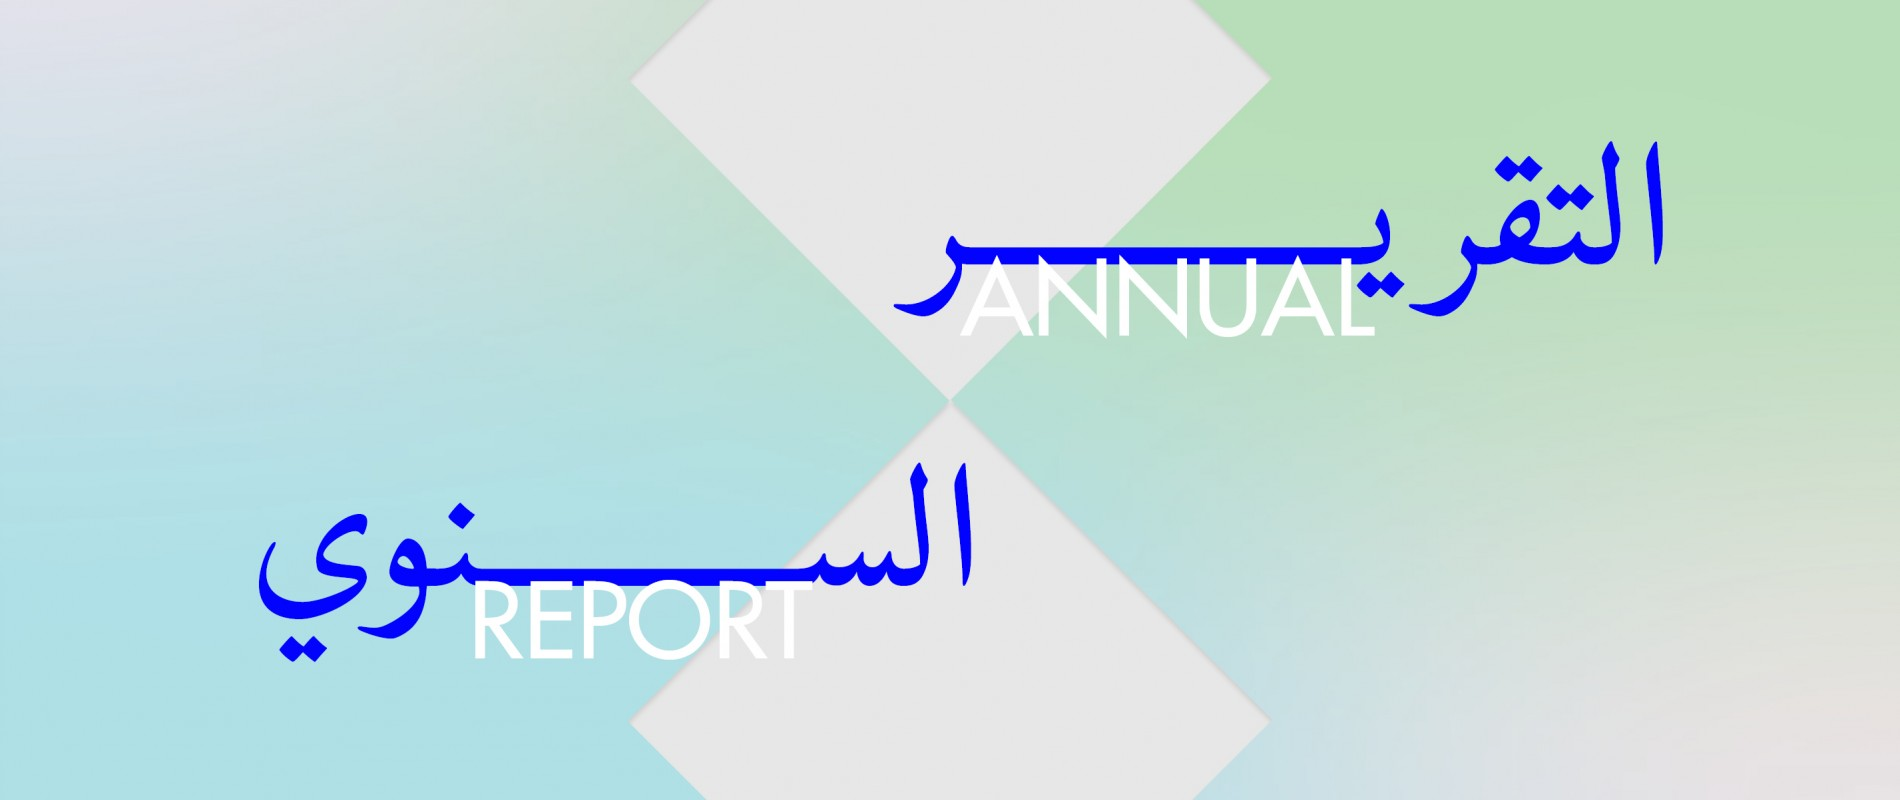 NAAS 2019-2020 Annual Report